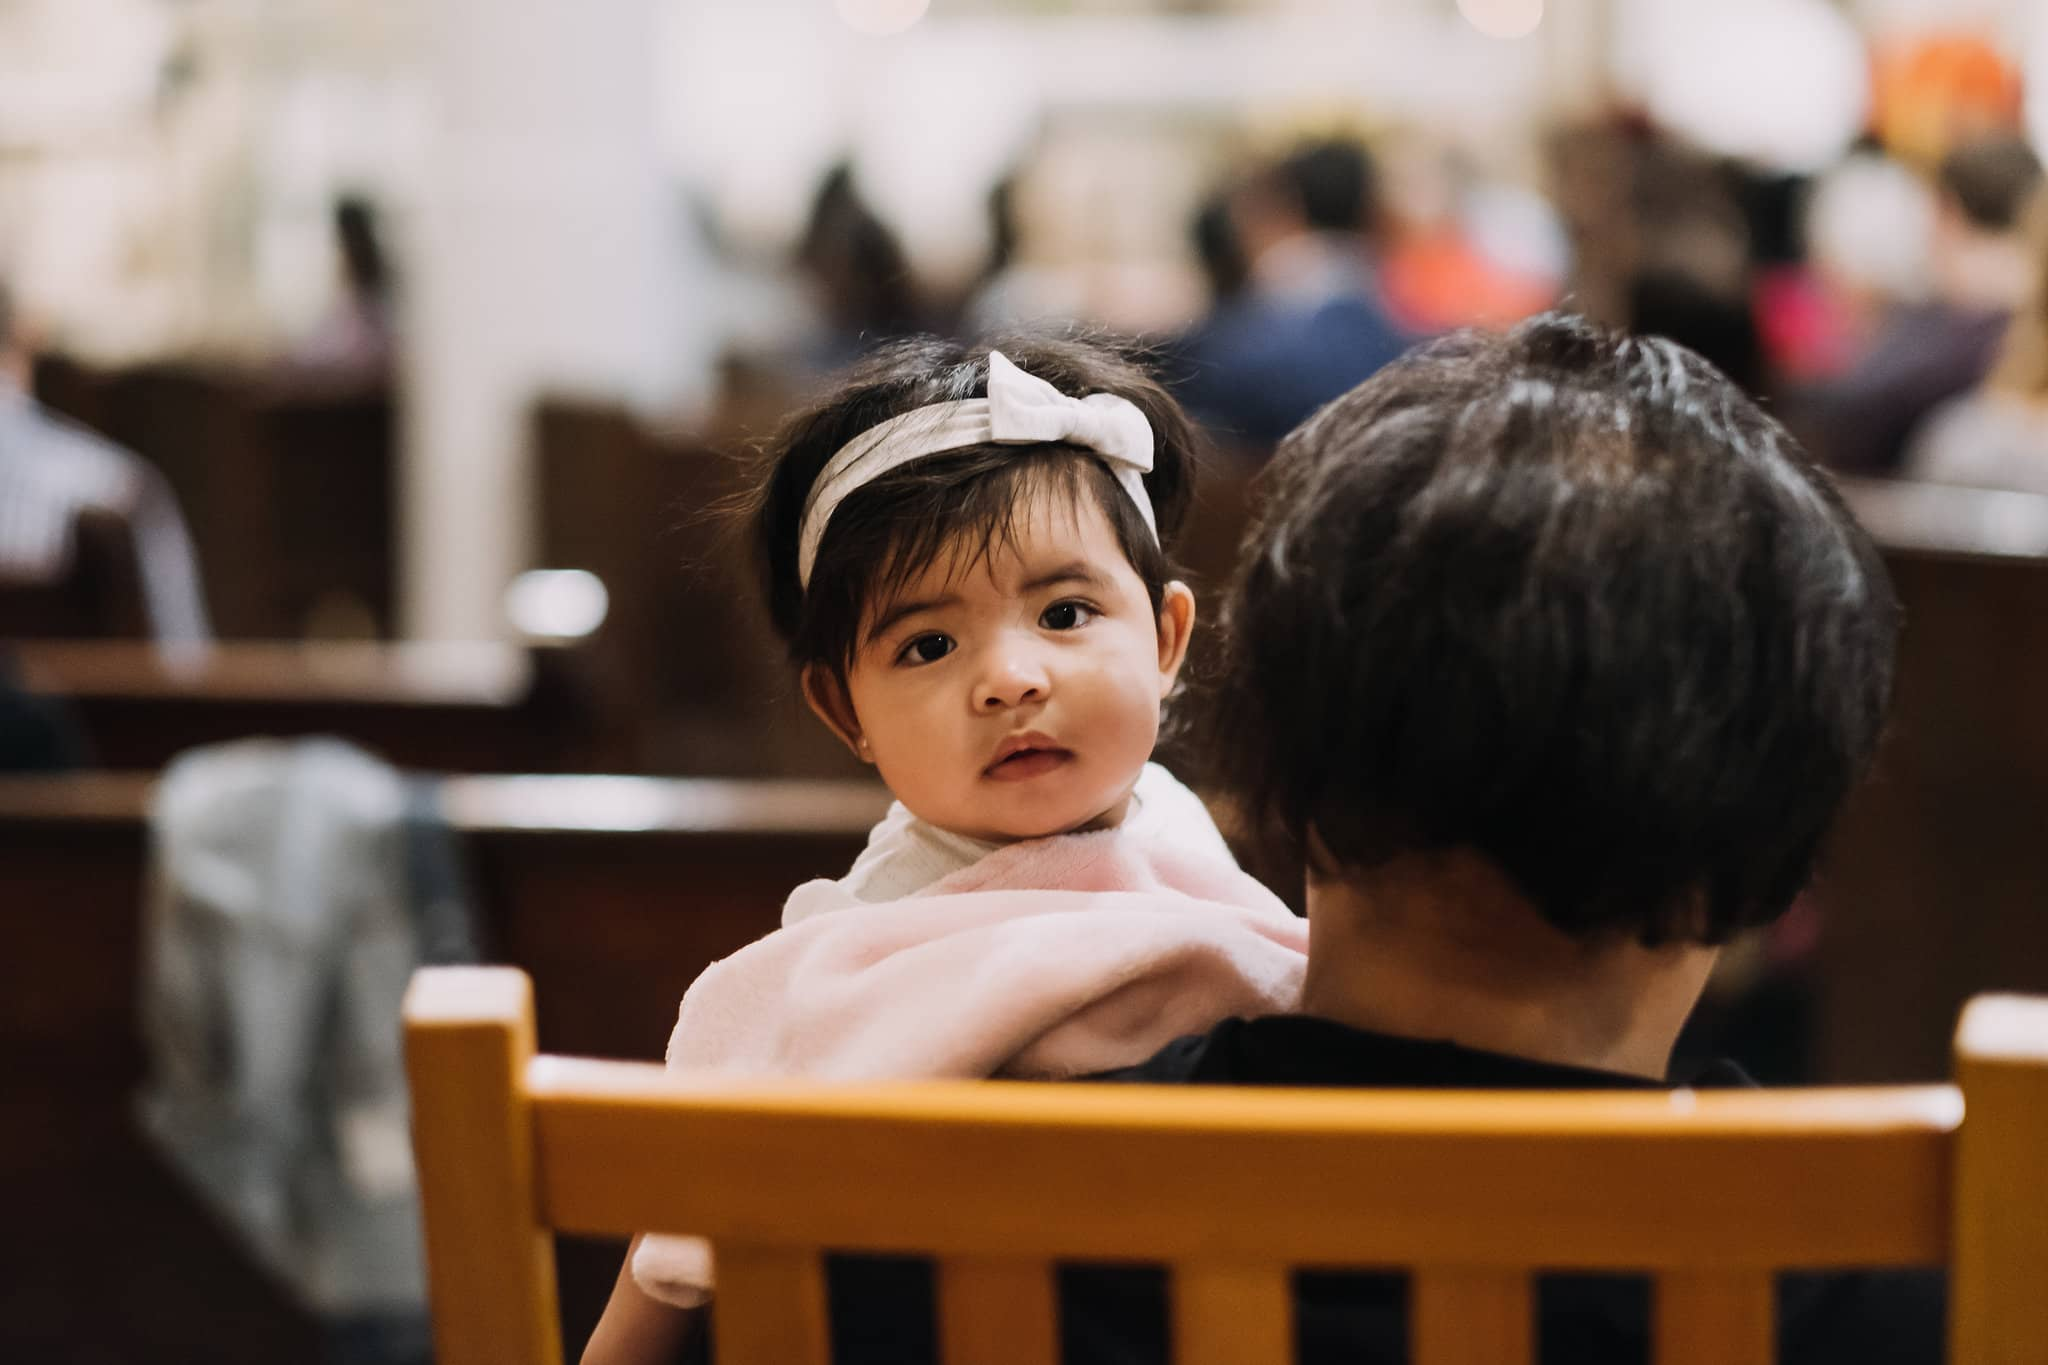 family-children-youth-diversity-community-st-francis-de-sales-church-new-york-city.jpg